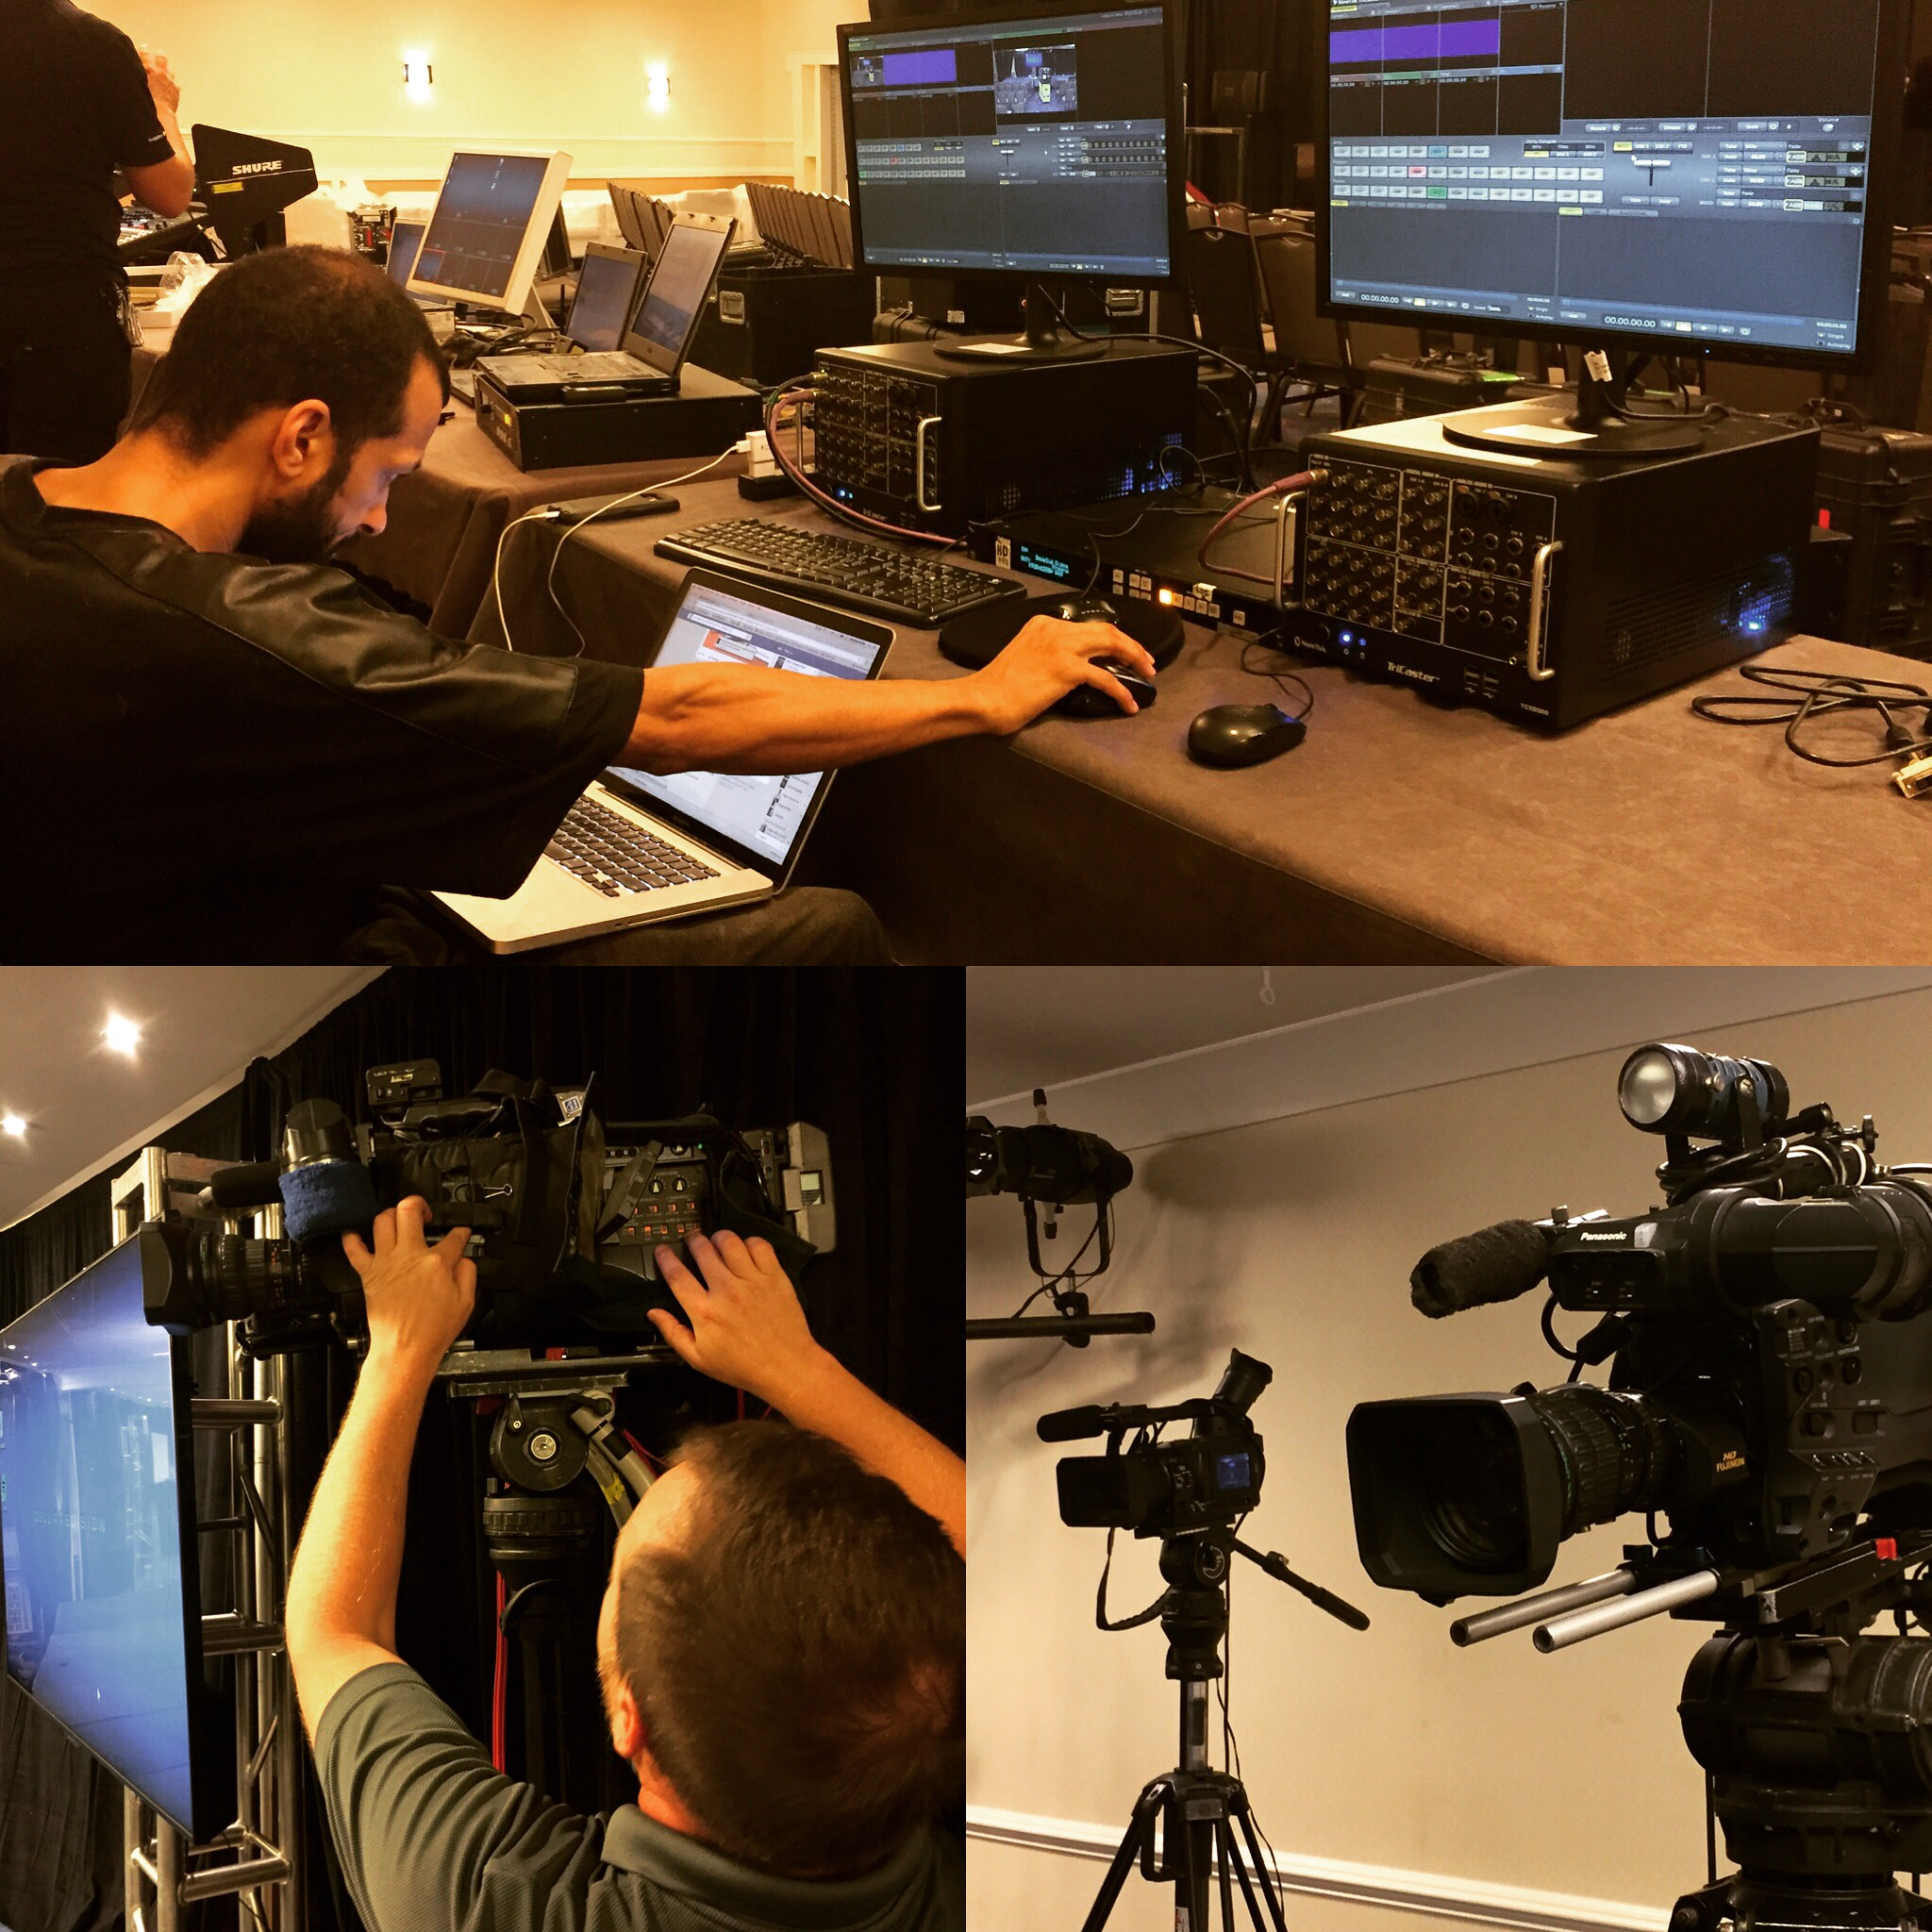 audio video production recording lectures seminars and Webcasting provides a live video, audio,  video production provides lecture and event recording, production,  audiovisual and media services.